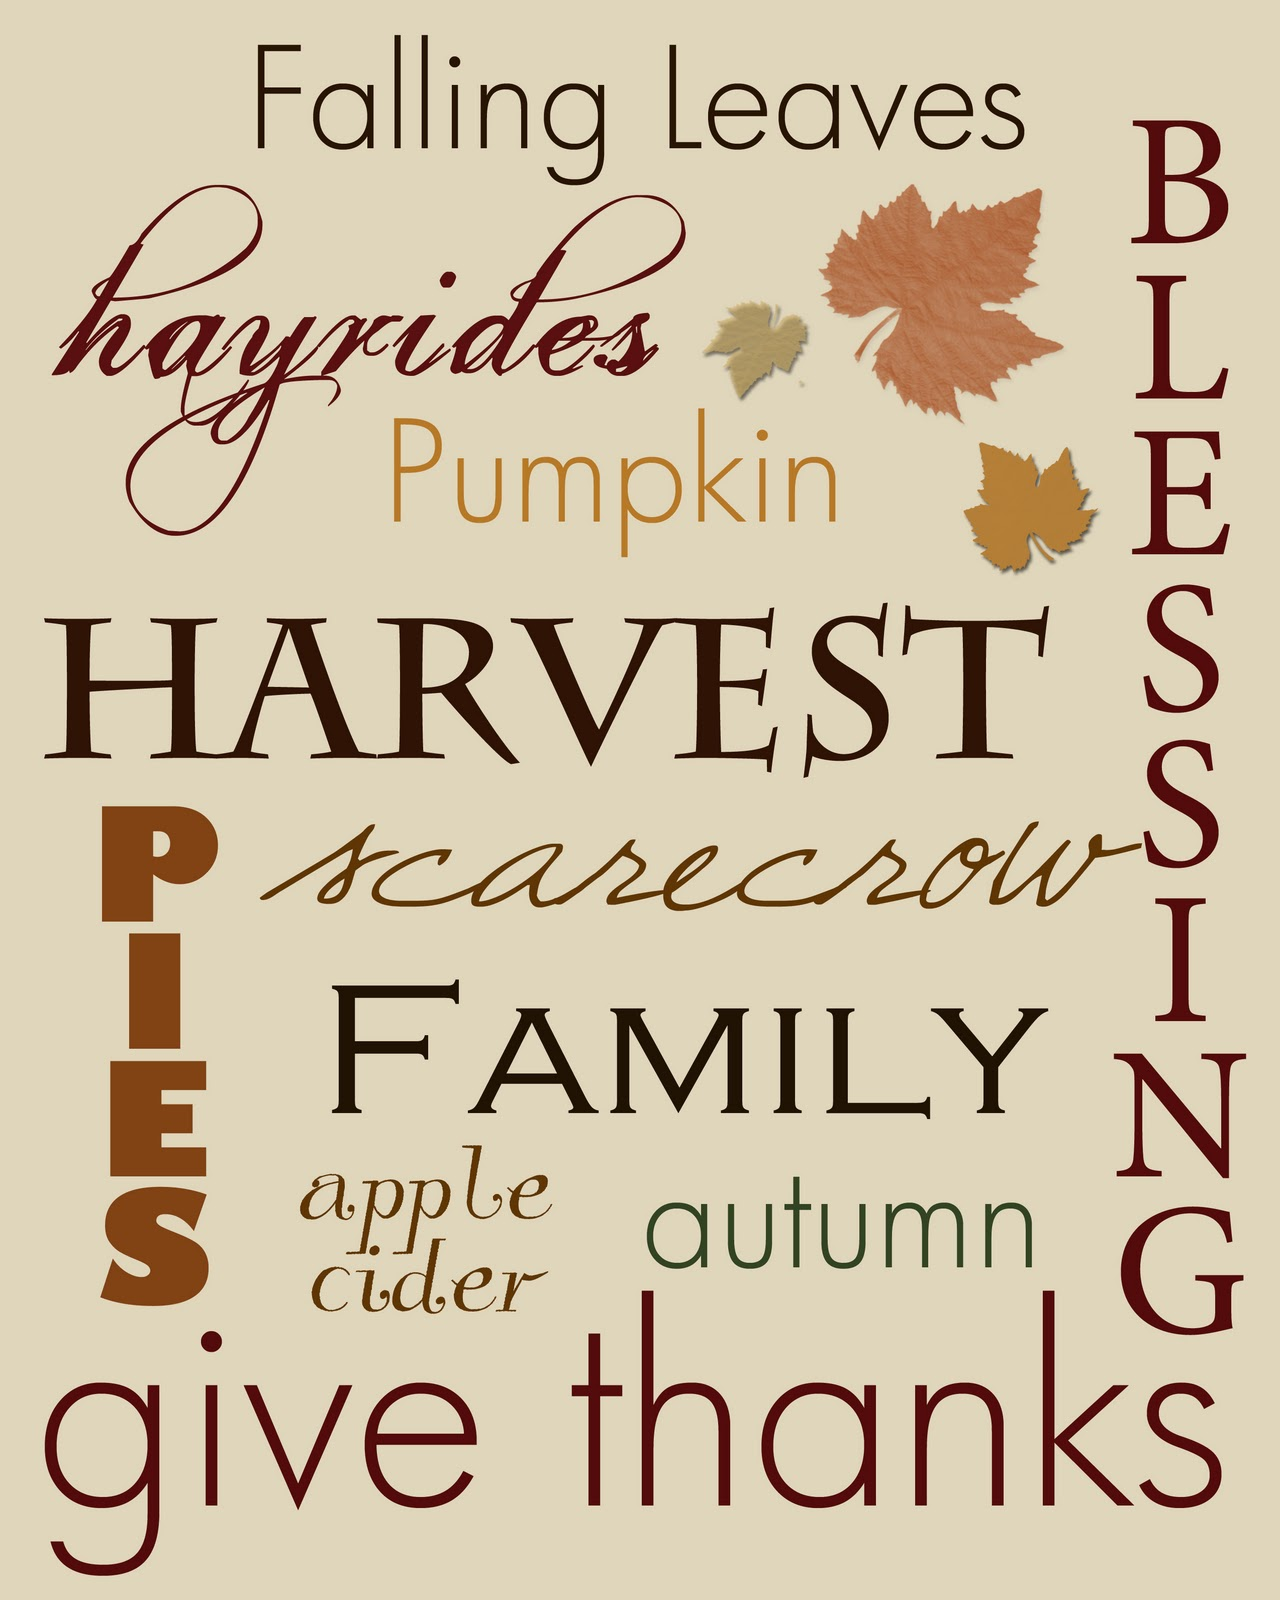 Harvest Blessings Quotes Quotesgram